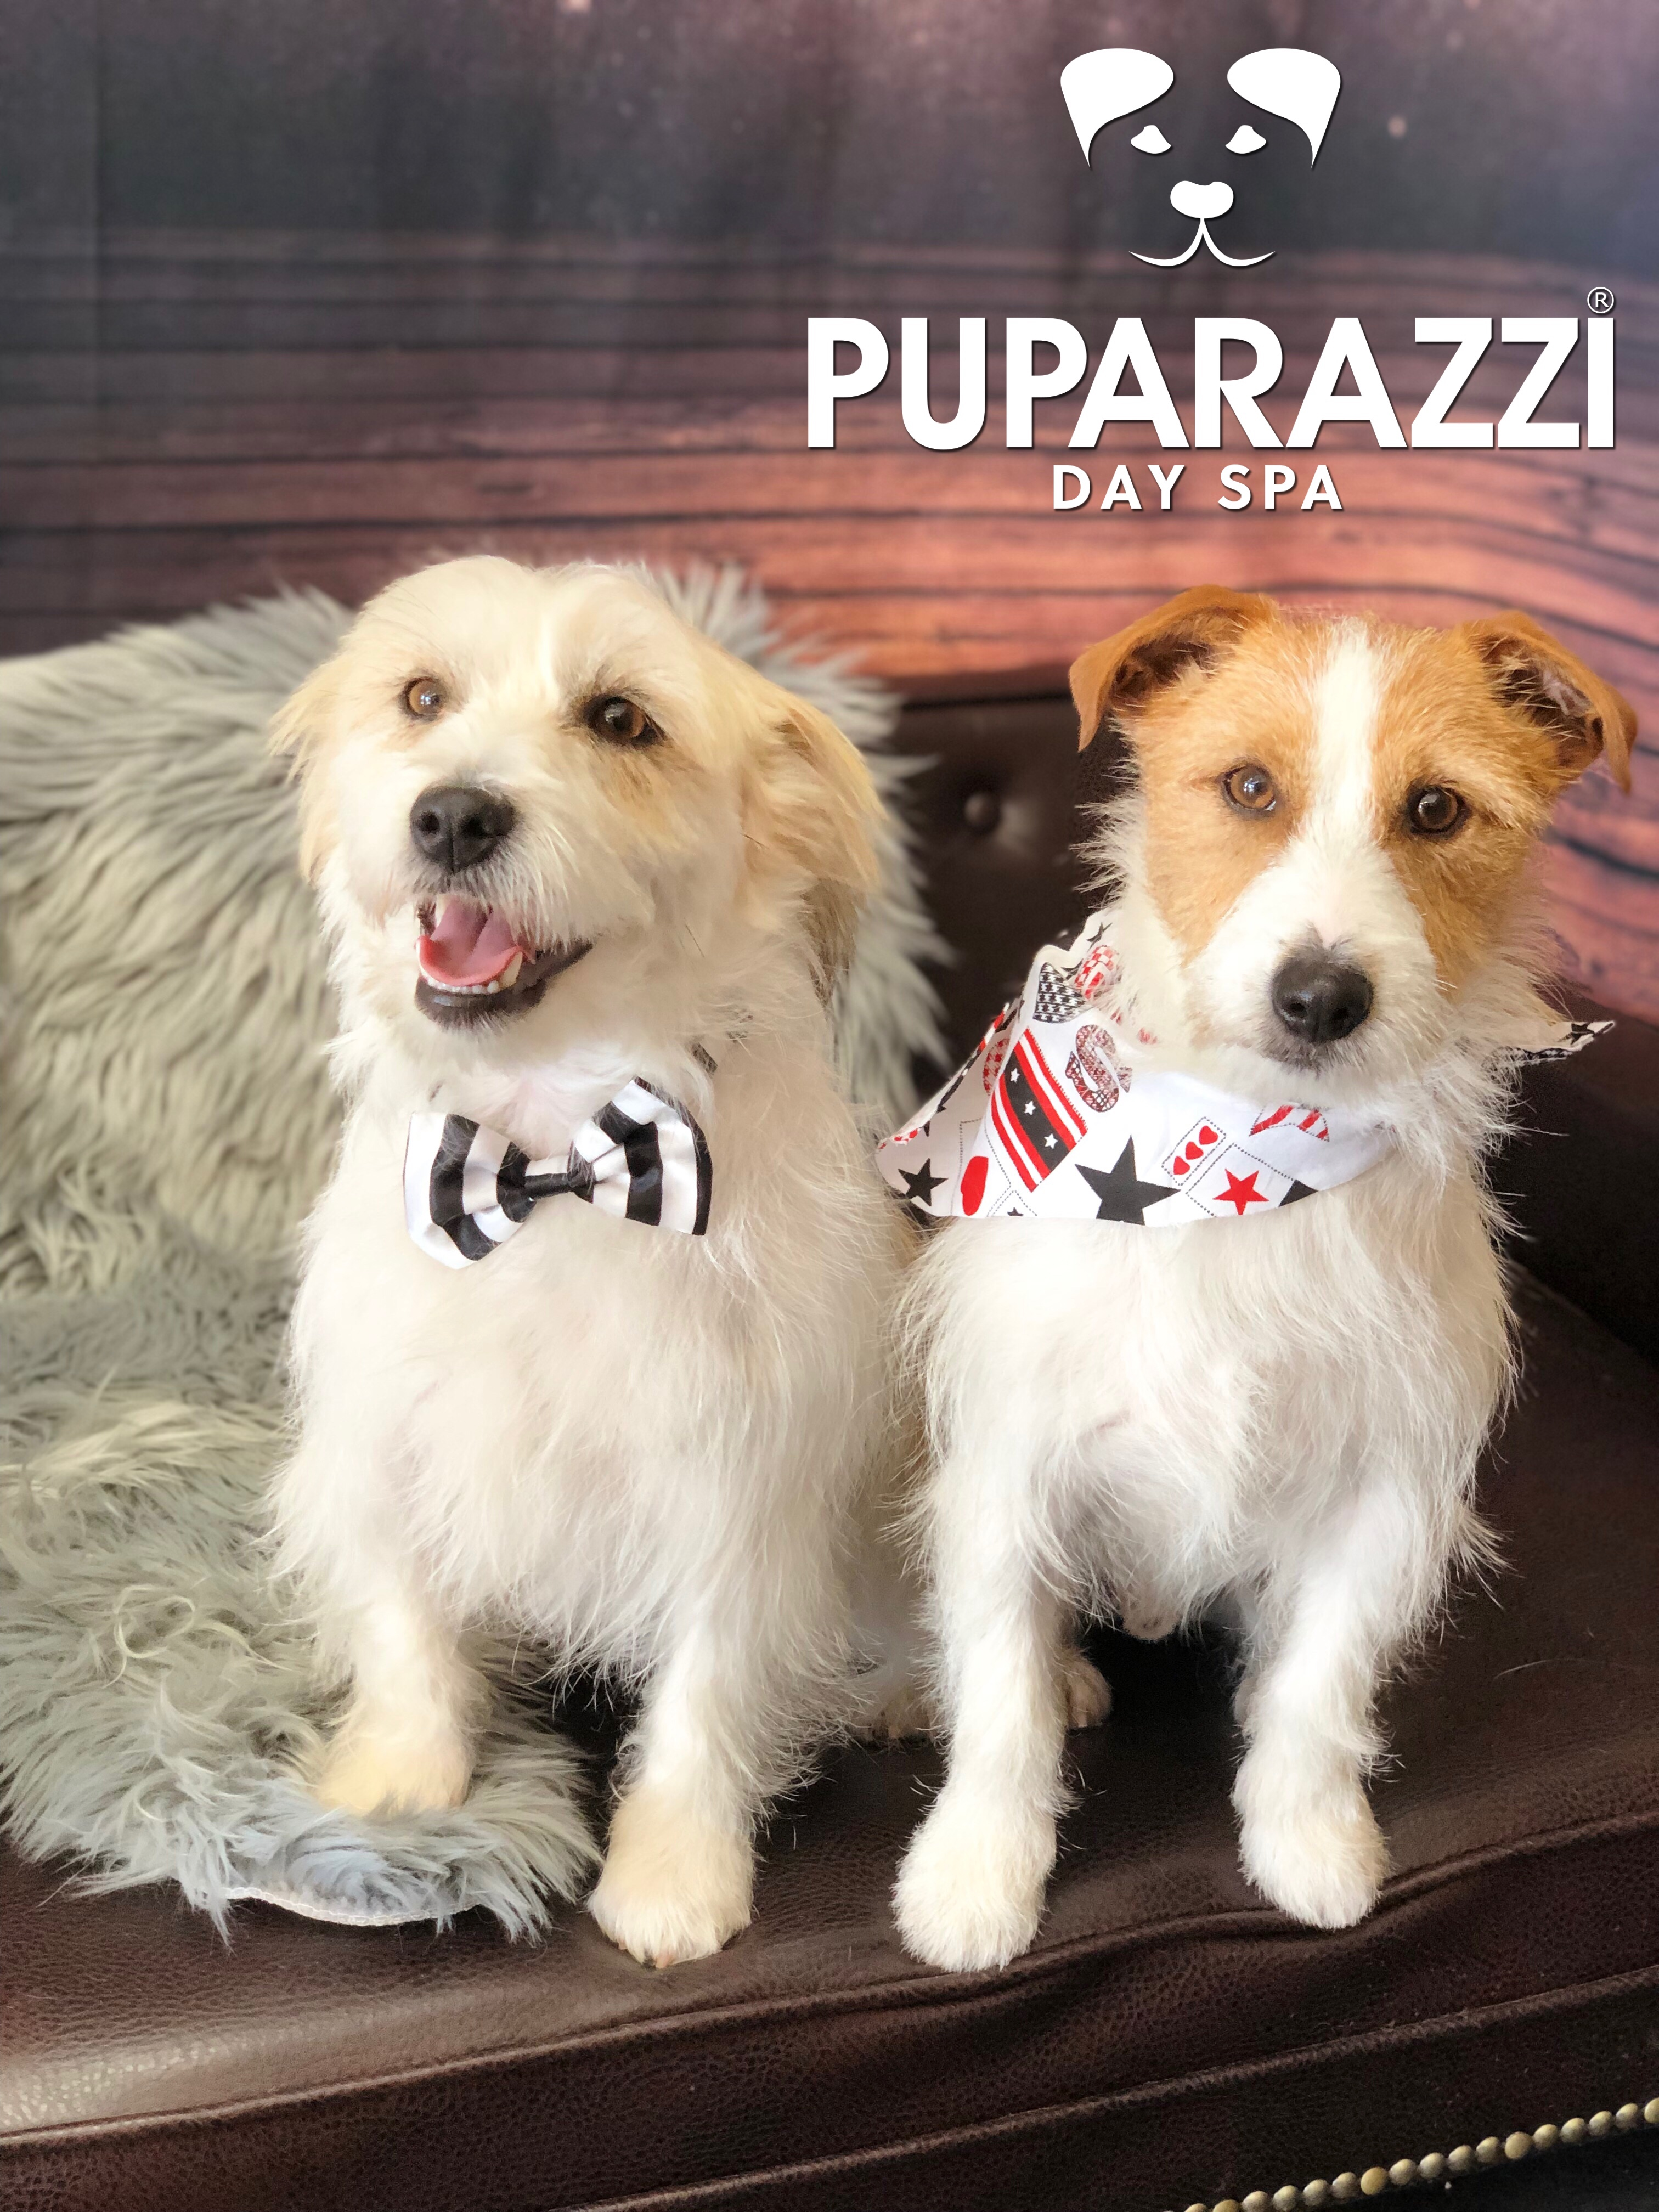 A big Happy Birthday to Max & Neville at Puparazzi Day Spa